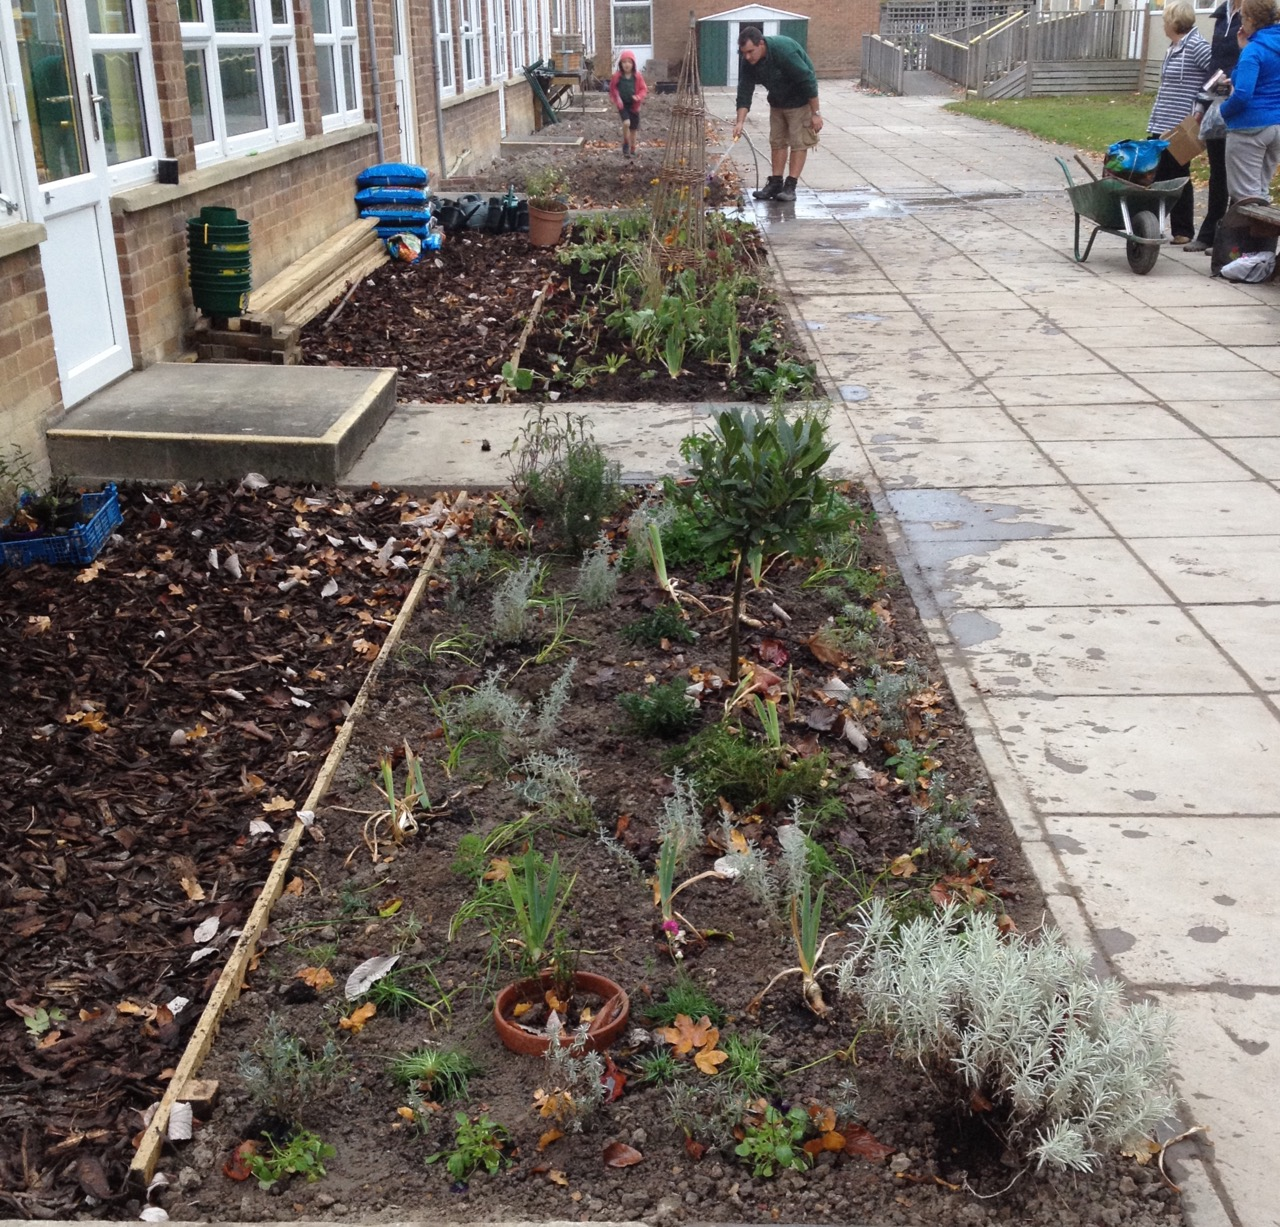 November 2017: making a start on the new school garden at Queen Edith's primary school.